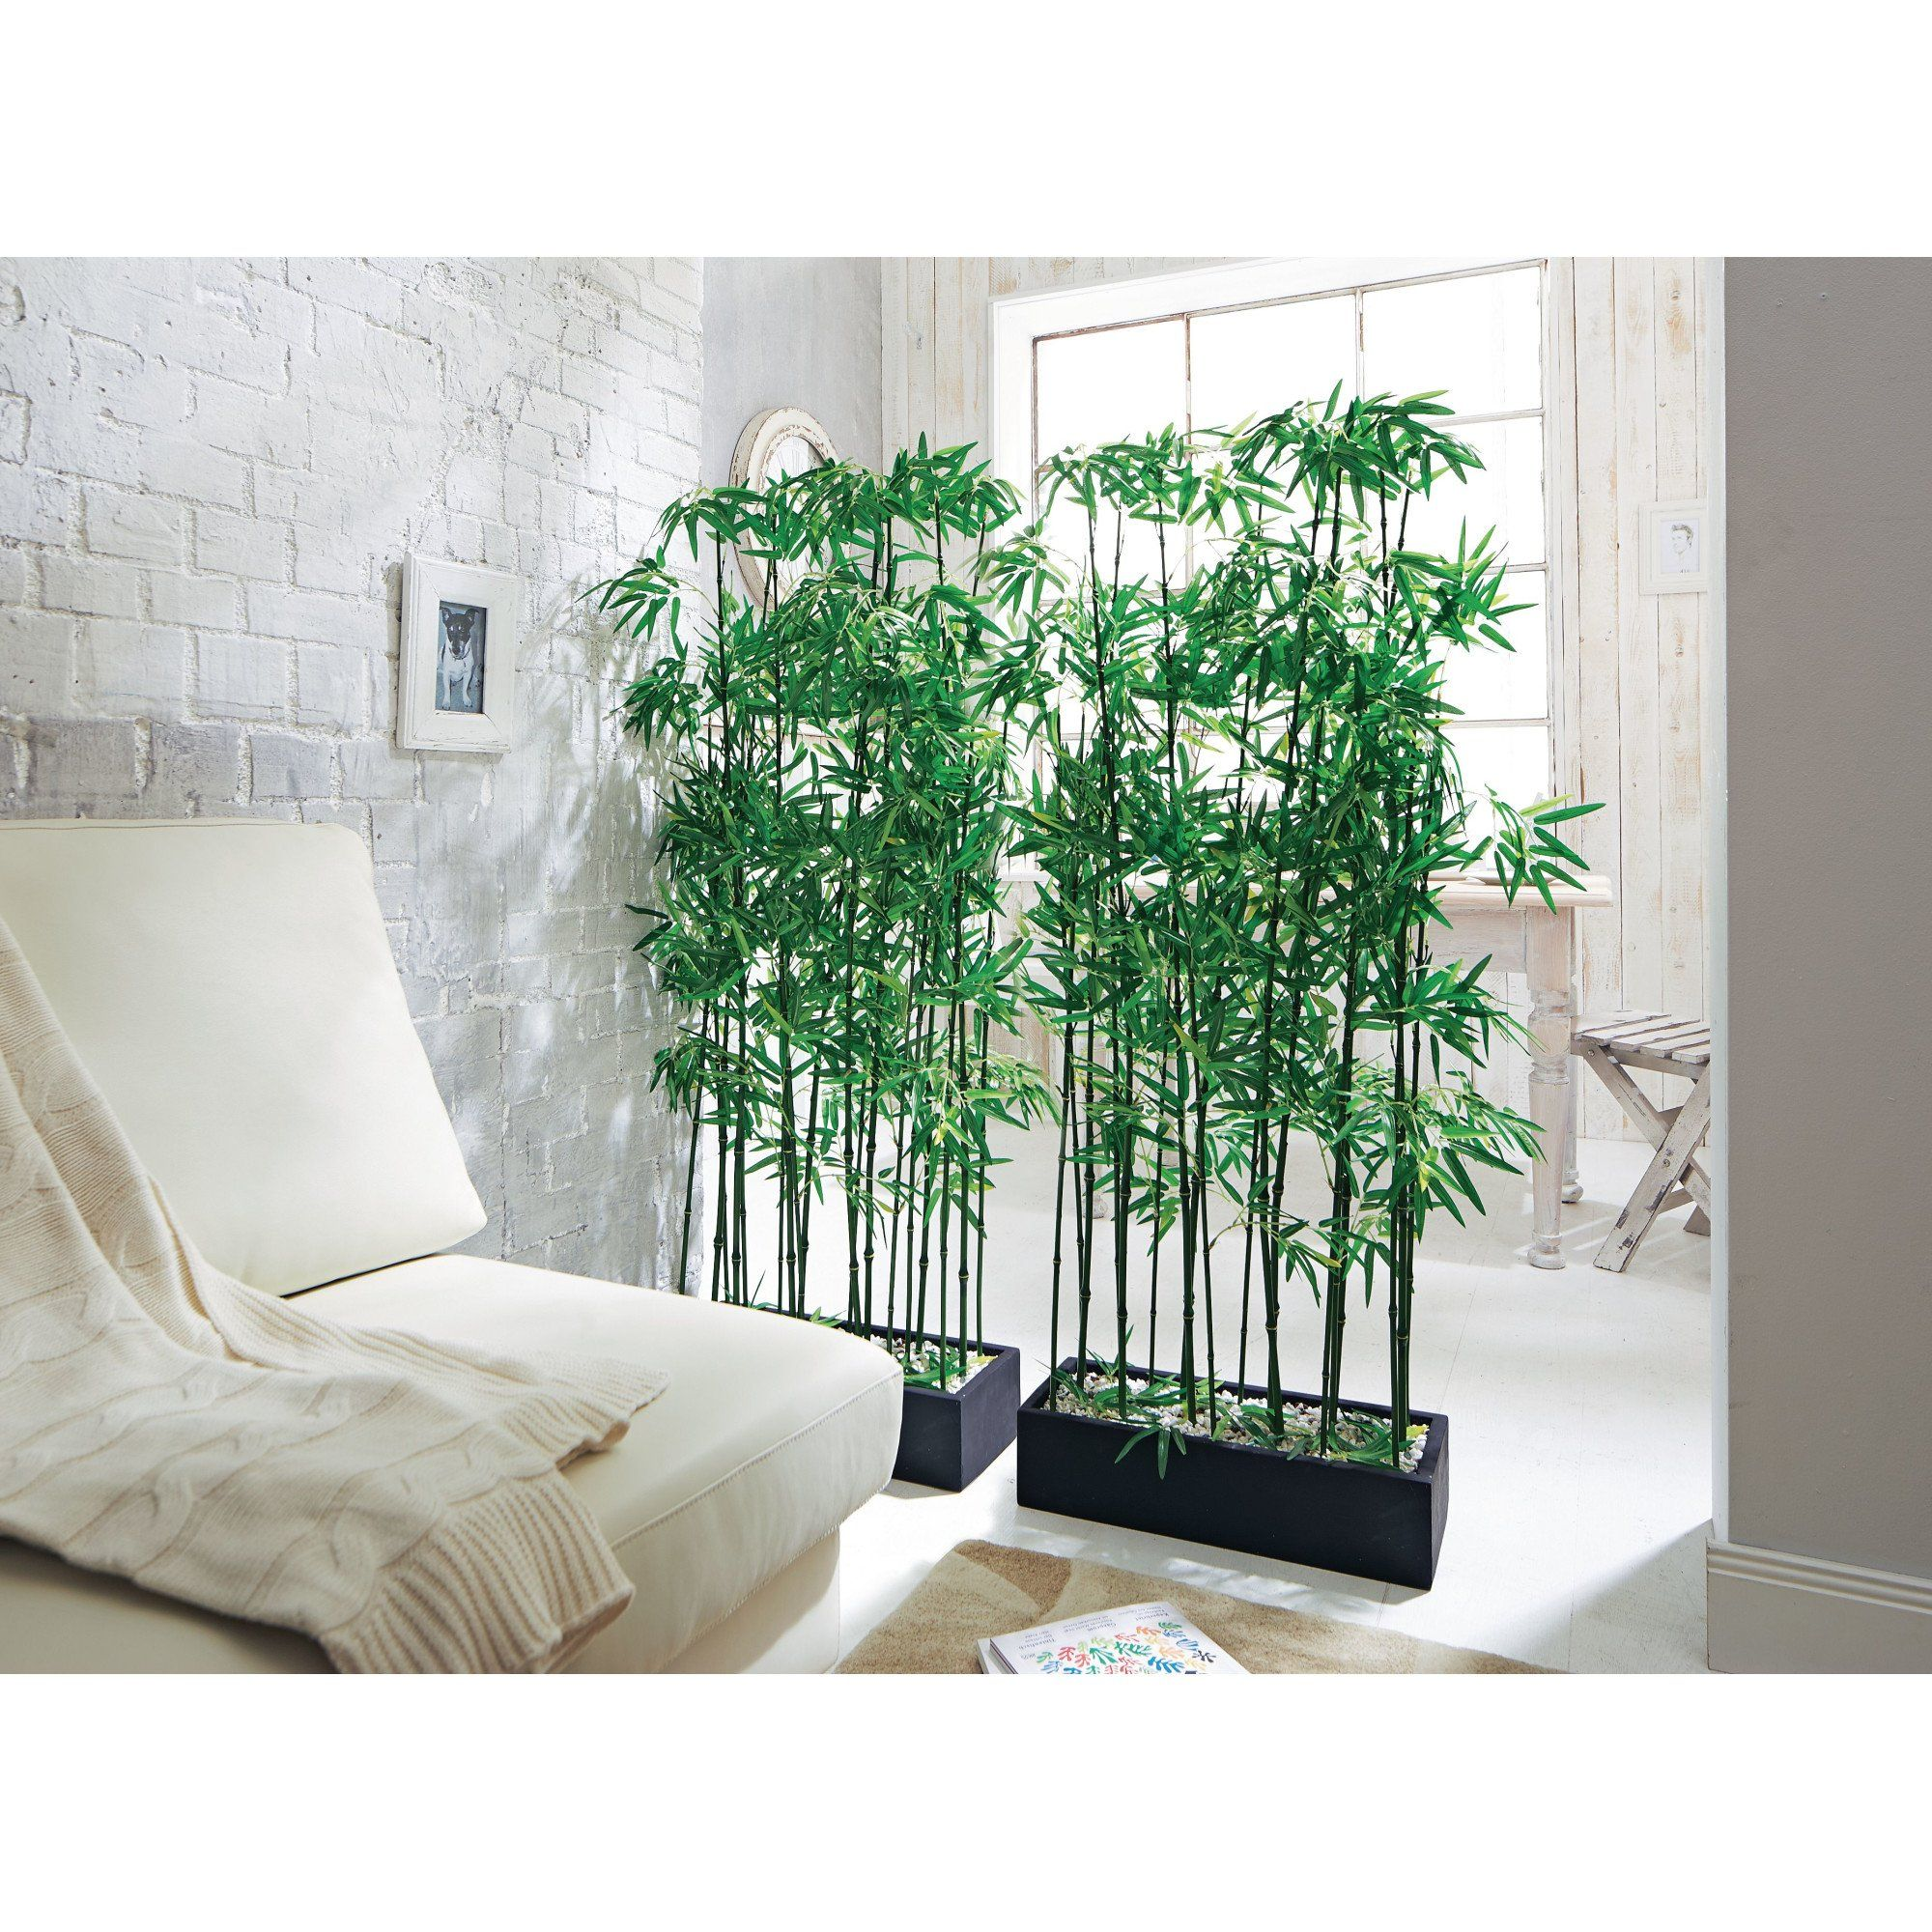 artificial bamboo plant room divider, approx. 140 cm high: amazon